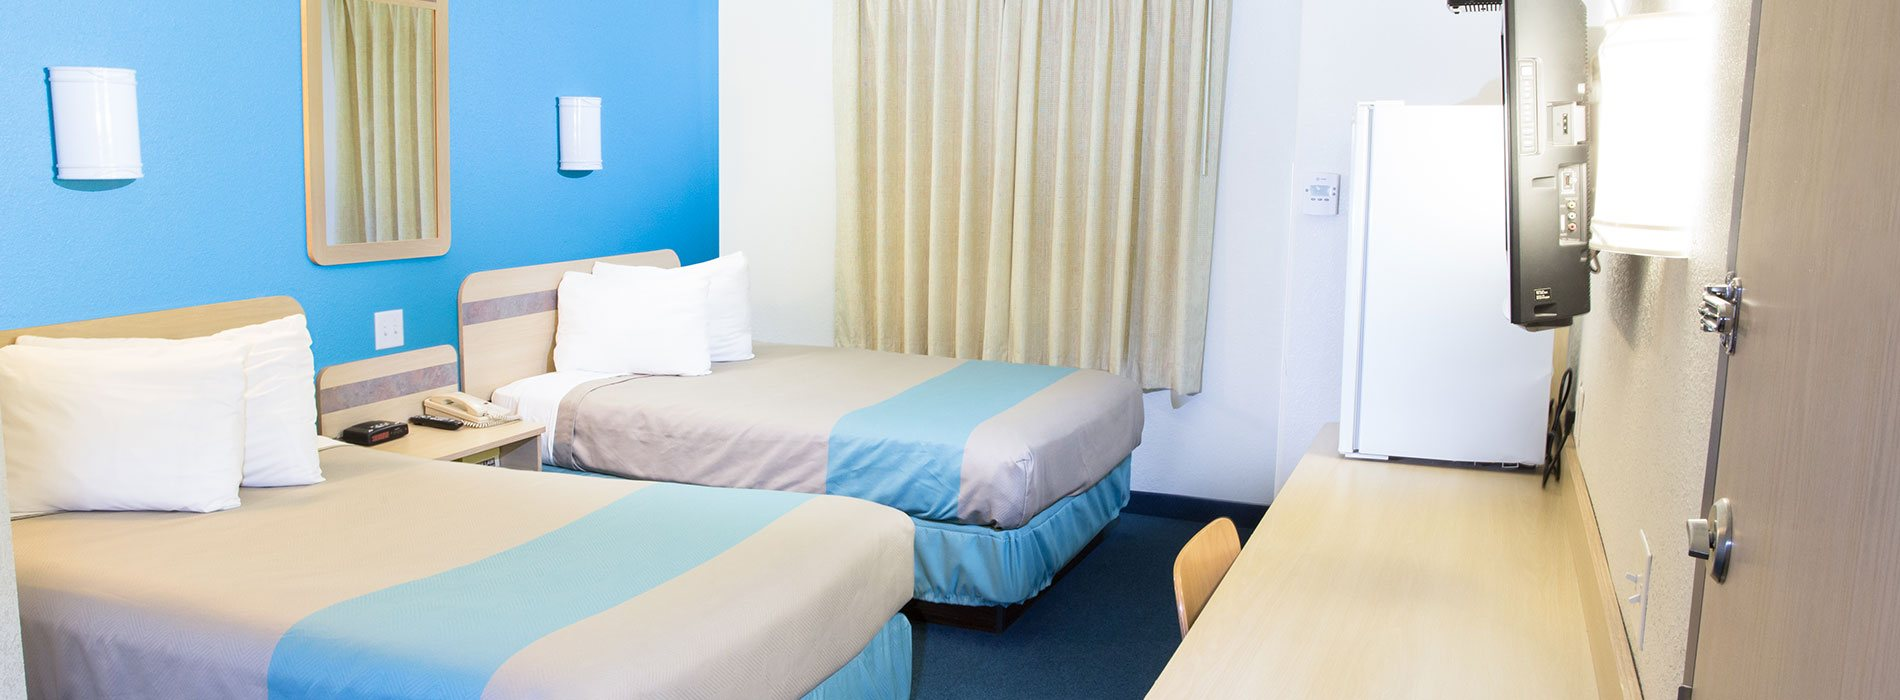 A two bed suite at d3h Motel 6 Red Deer includes beds dressed in white, light gray and powder blue linens facing a wall mounted 32-inch flatscreen TV.  Other furnishings include matching wheat color wood bedside table, and a long work bench with a white mini refrigerator sitting atop.